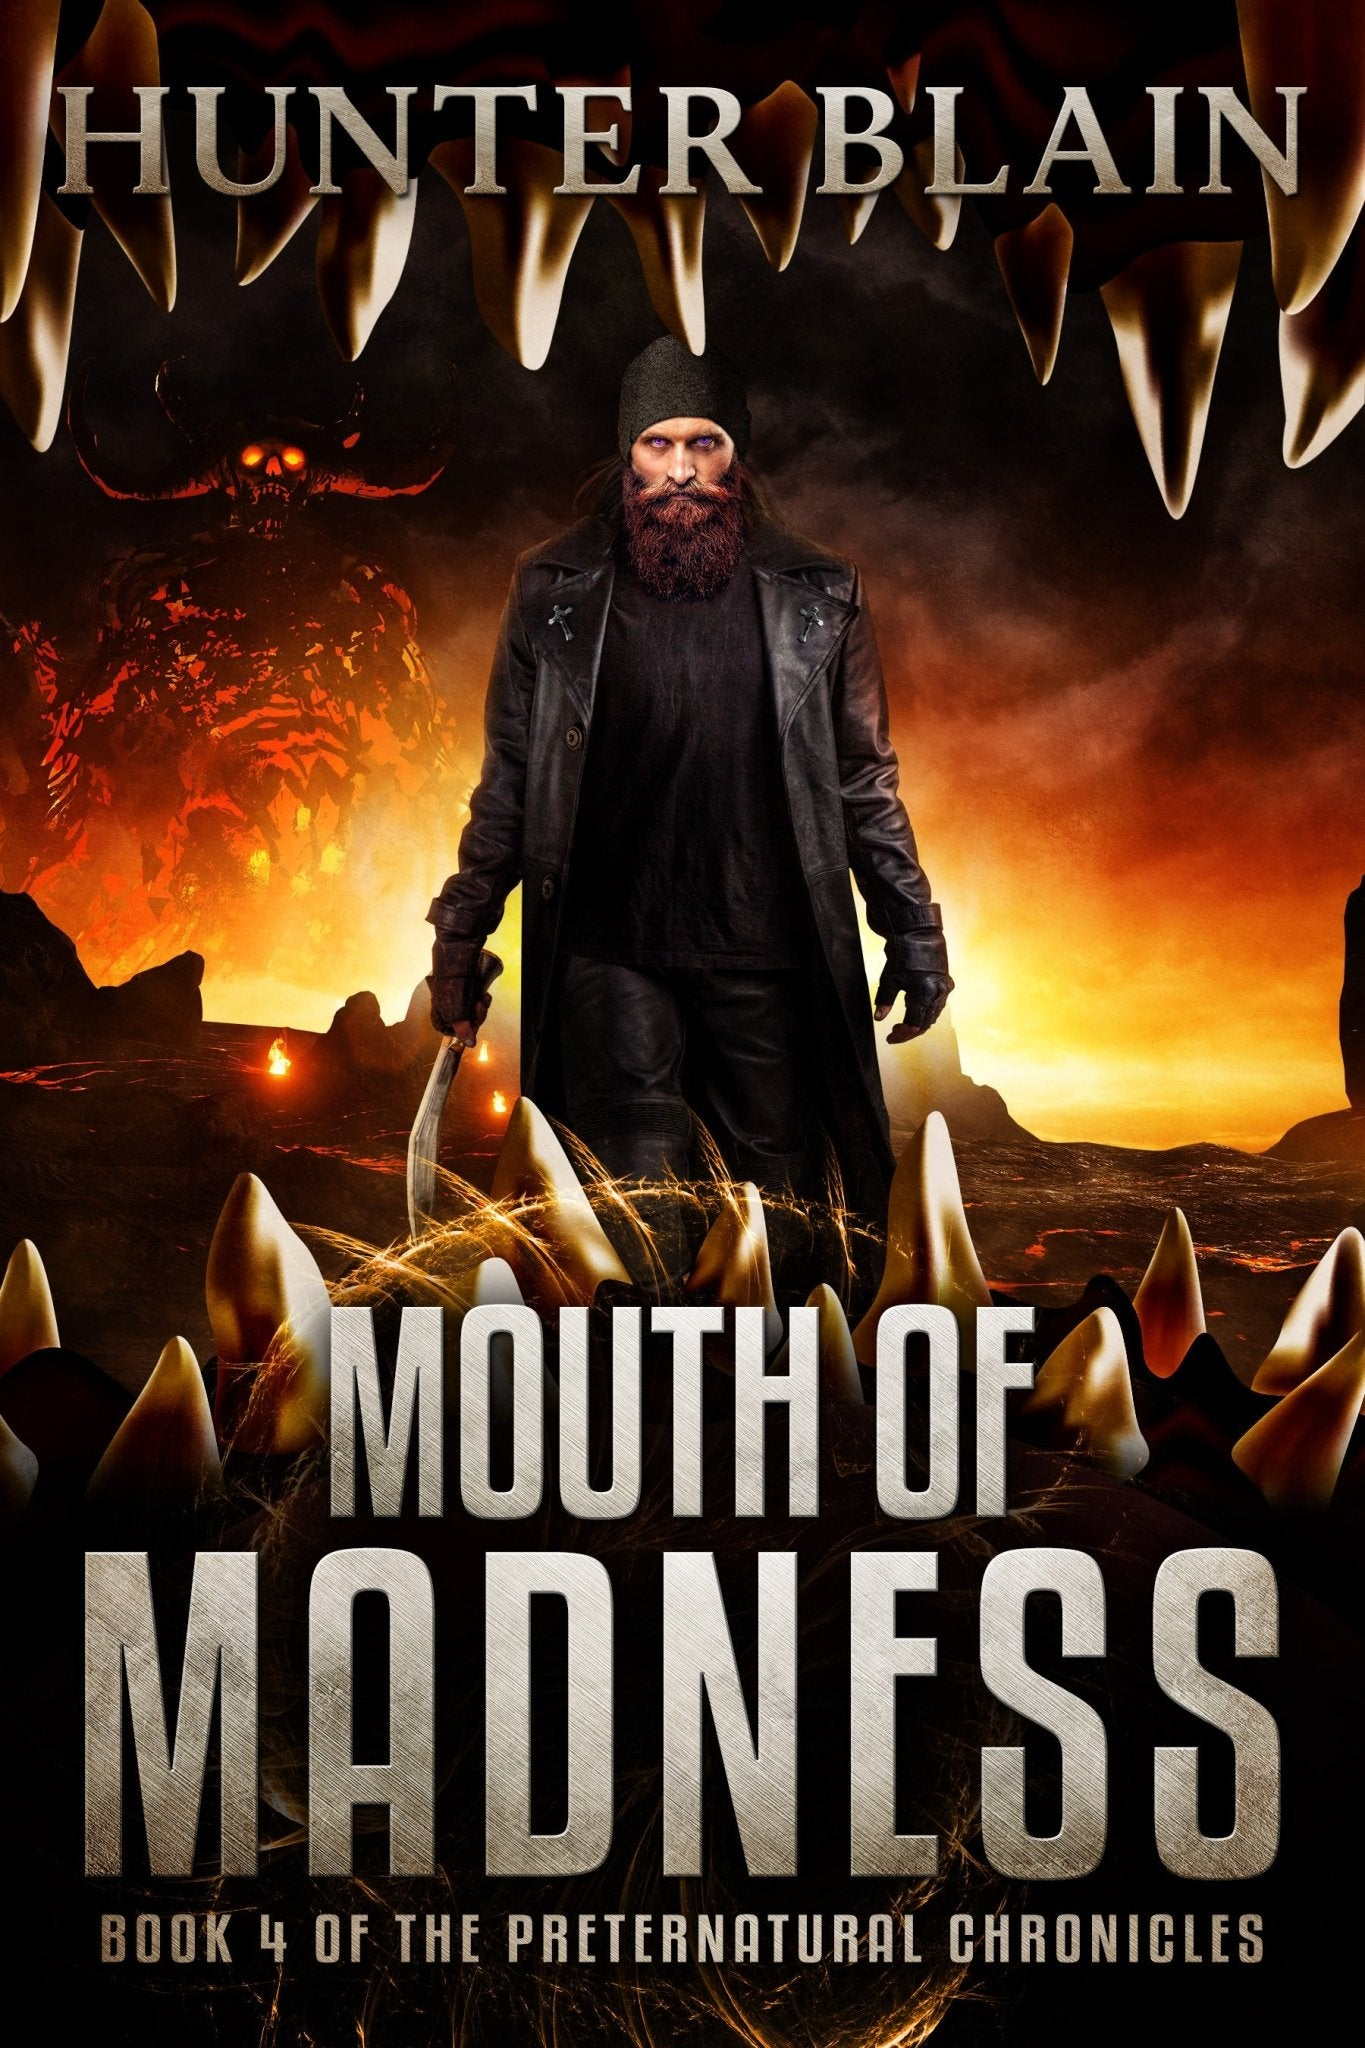 Mouth of Madness: Preternatural Chronicles Book 4 - Argento Bookstore